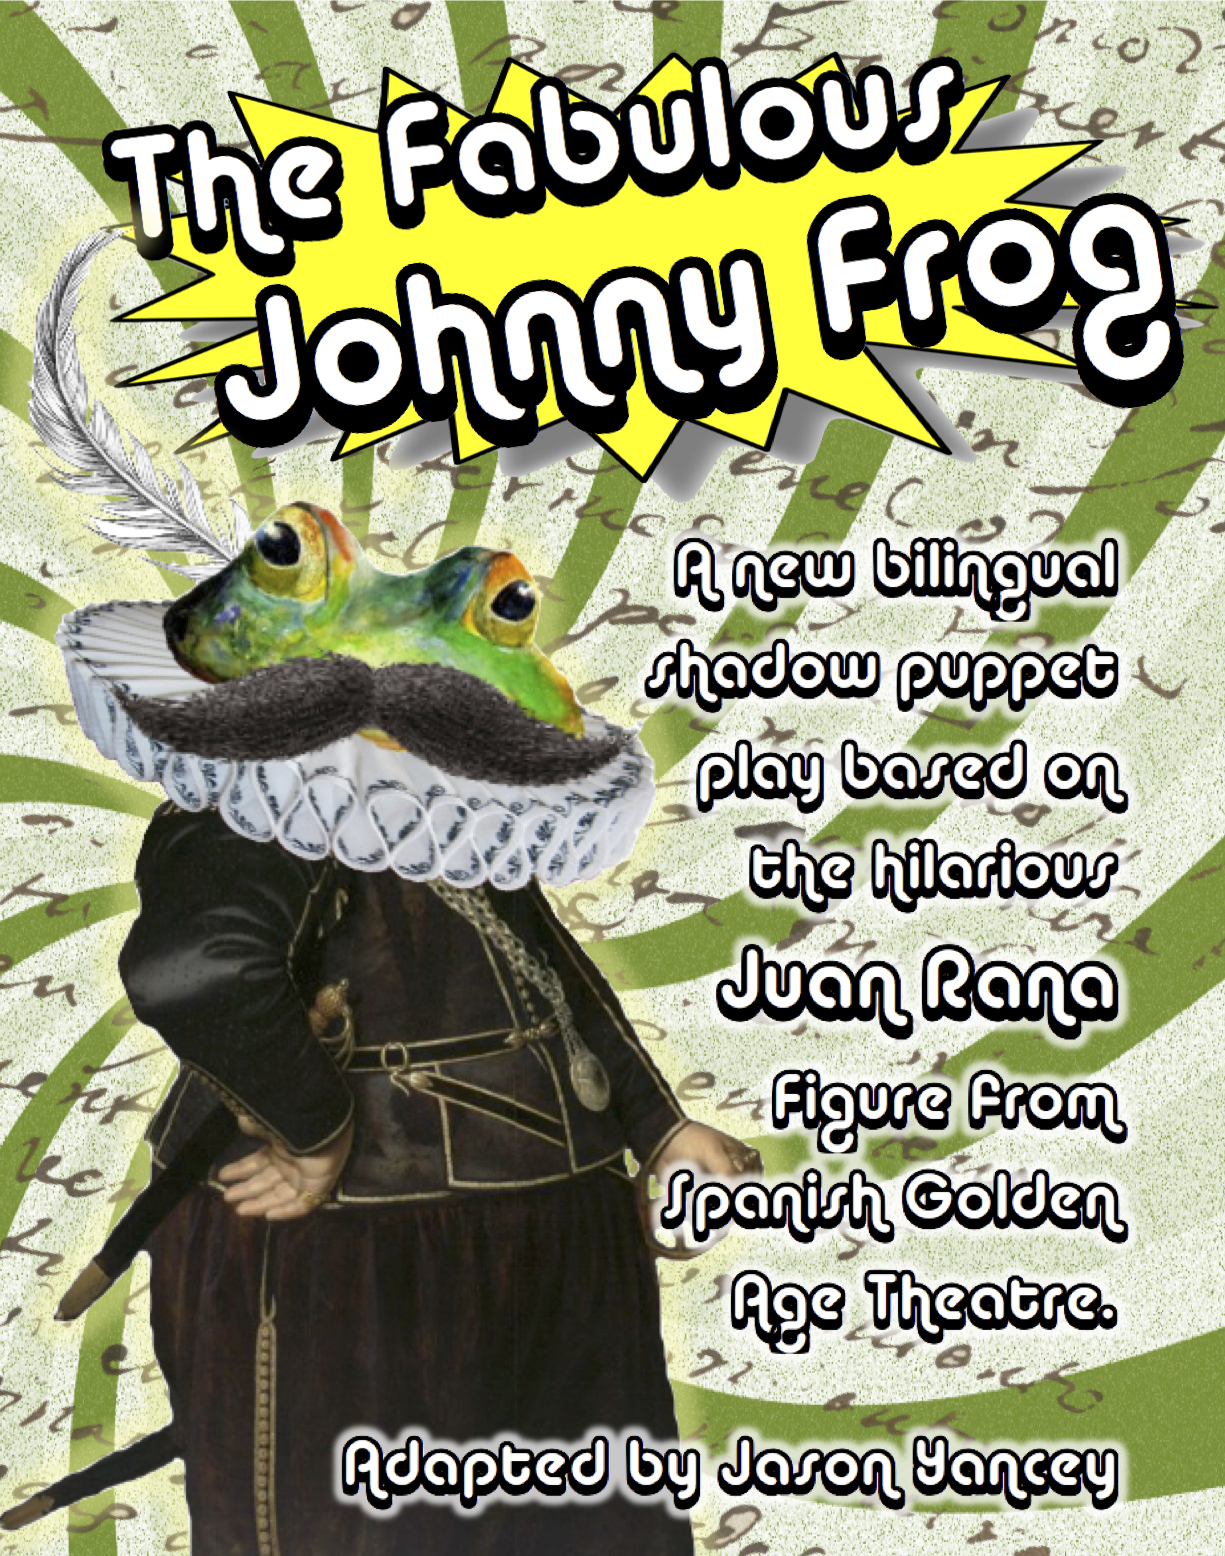 The Fabulous Johnny Frog (2018) - Heroic. Brilliant. Tenacious. Johnny Frog is none of these things. Tossed around in a world of calamities and contradictions the hapless Johnny Frog is a simple man, a cowardly man, hungrier for a sandwich than for adventure. He's the mayor of his village but most of the time he has no idea what's going on around him. Why, for example, will he die if he smells his favorite foods? How did he get challenged to a duel? And probably most perplexing, how is it possible that he, a man, is pregnant? This entertaining and educational presentation uses innovative shadow puppetry to introduce young audiences to seventeenth century Spanish theatre and a play format known as theentremés, featuring Spain's most celebrated stage bufoon, Juan Rana: the Fabulous Johnny Frog!